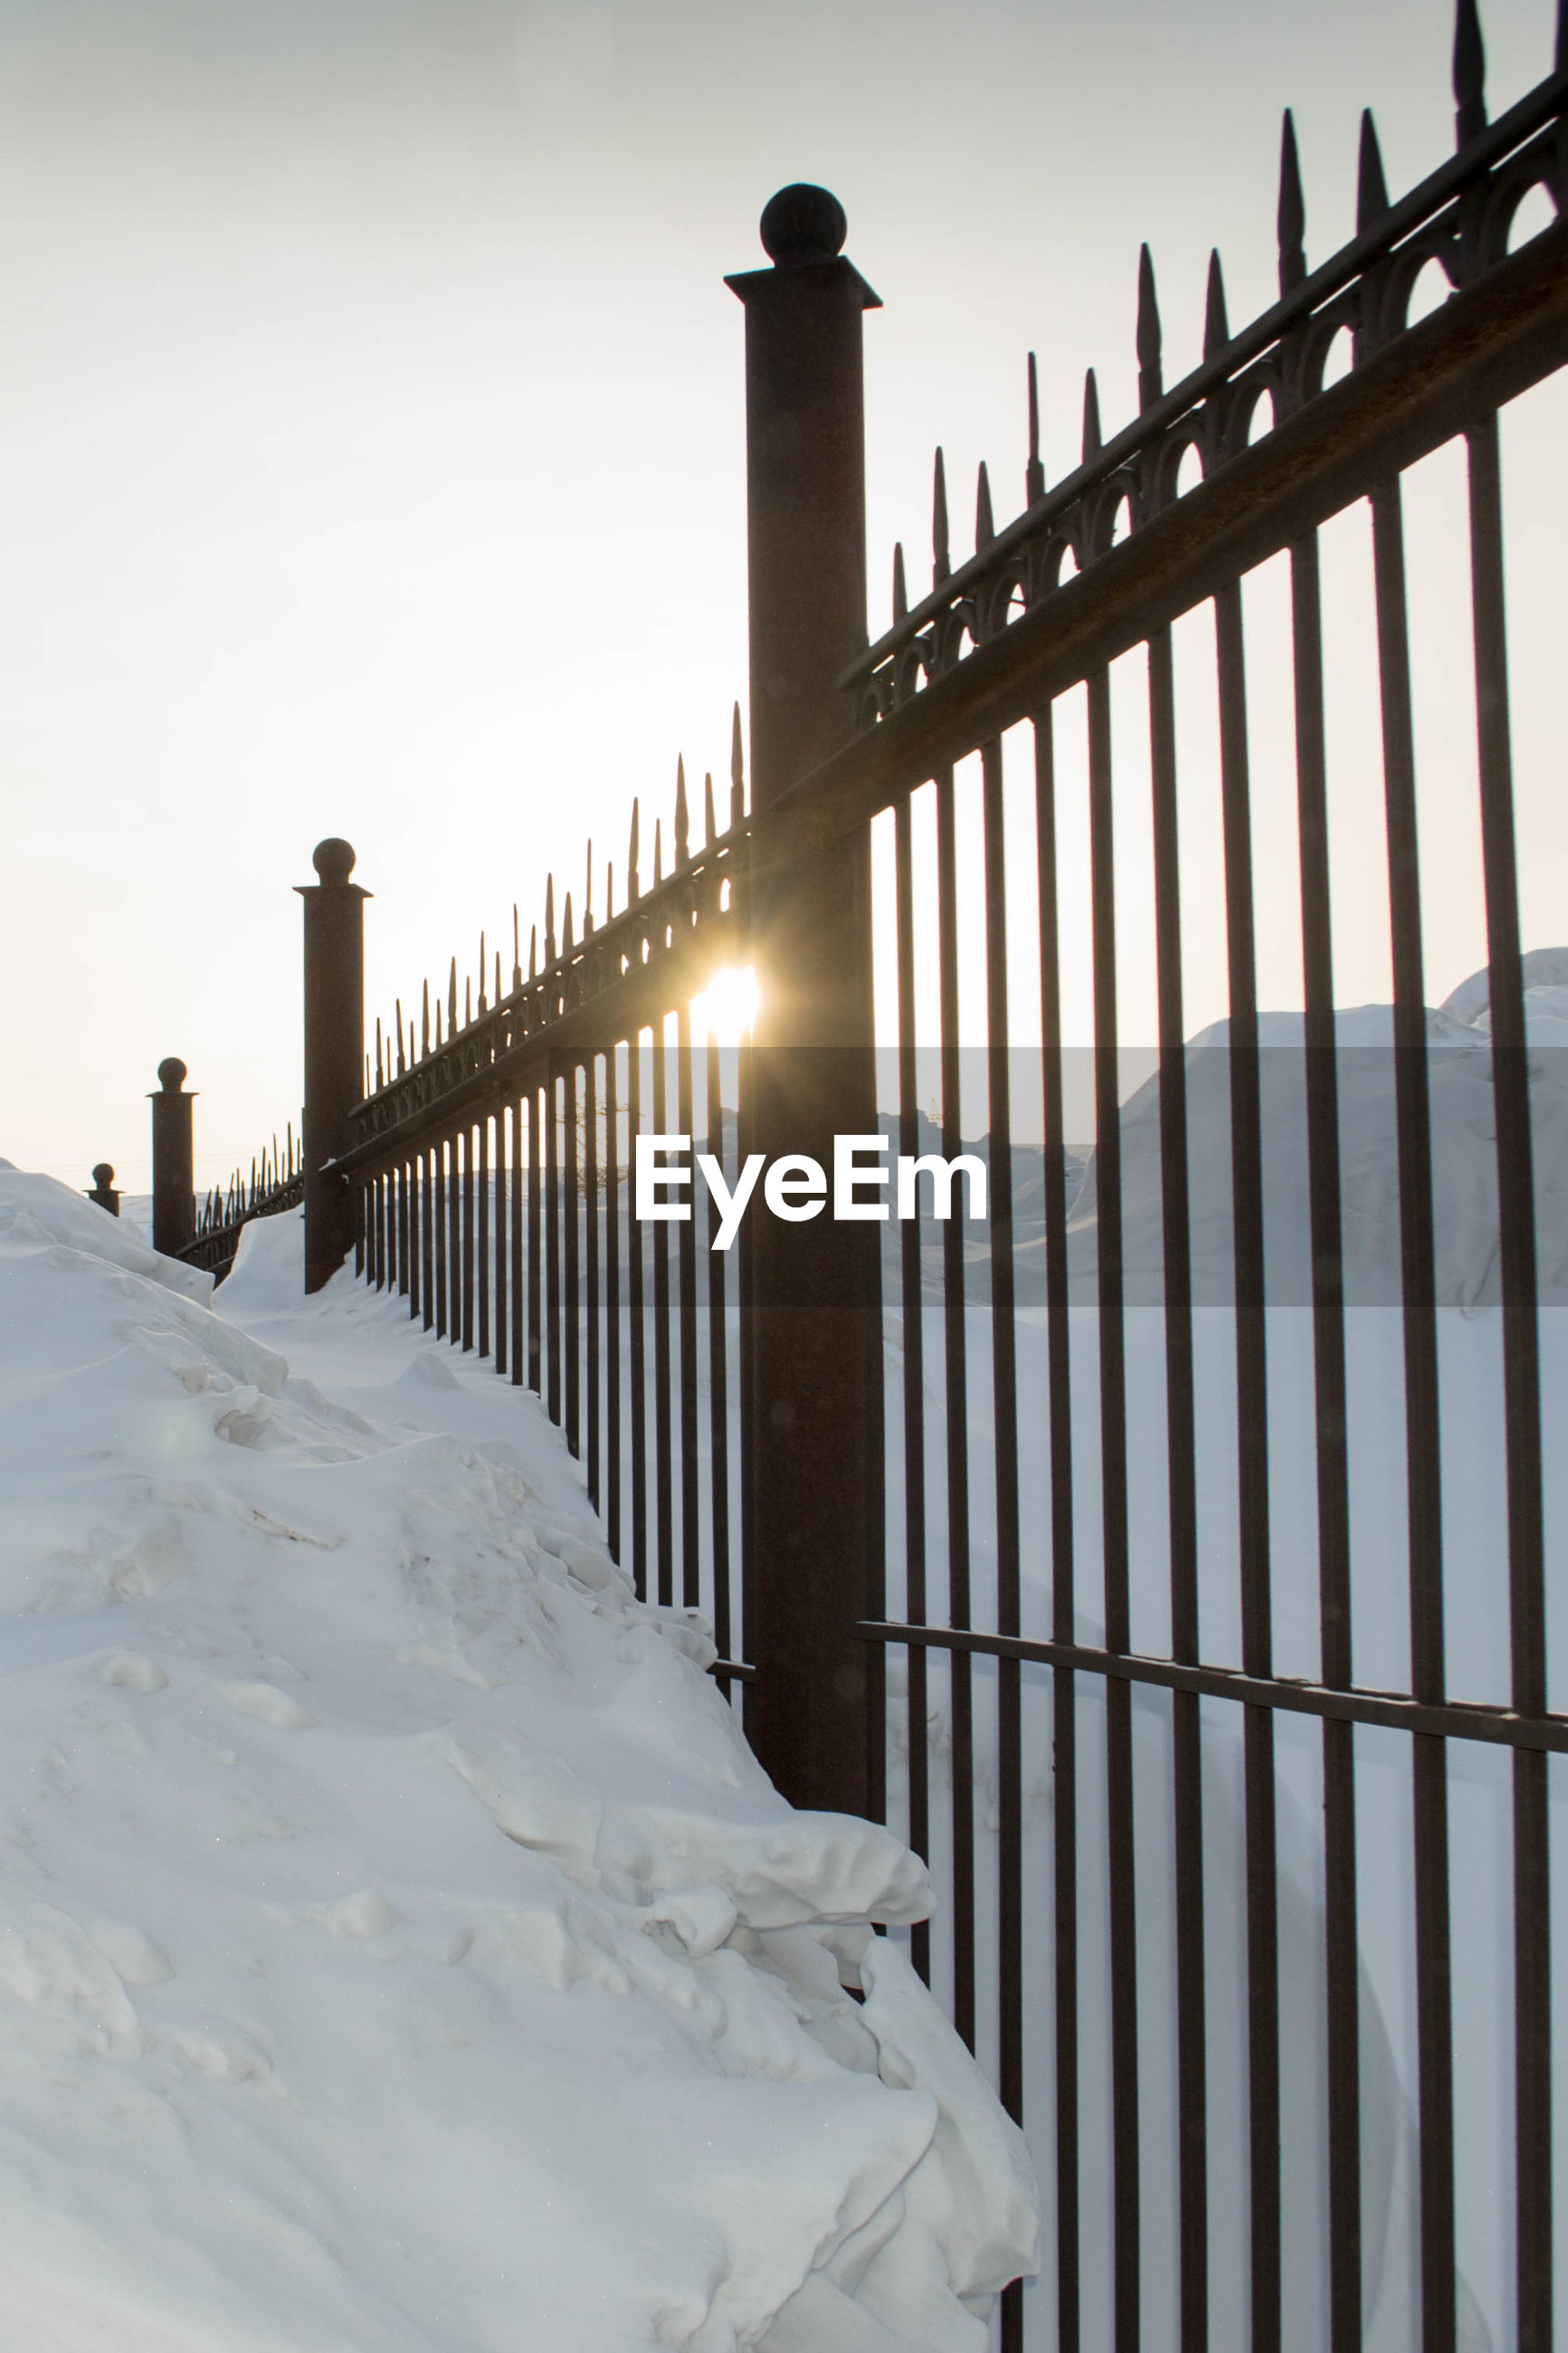 SNOW COVERED RAILING AGAINST FENCE DURING WINTER